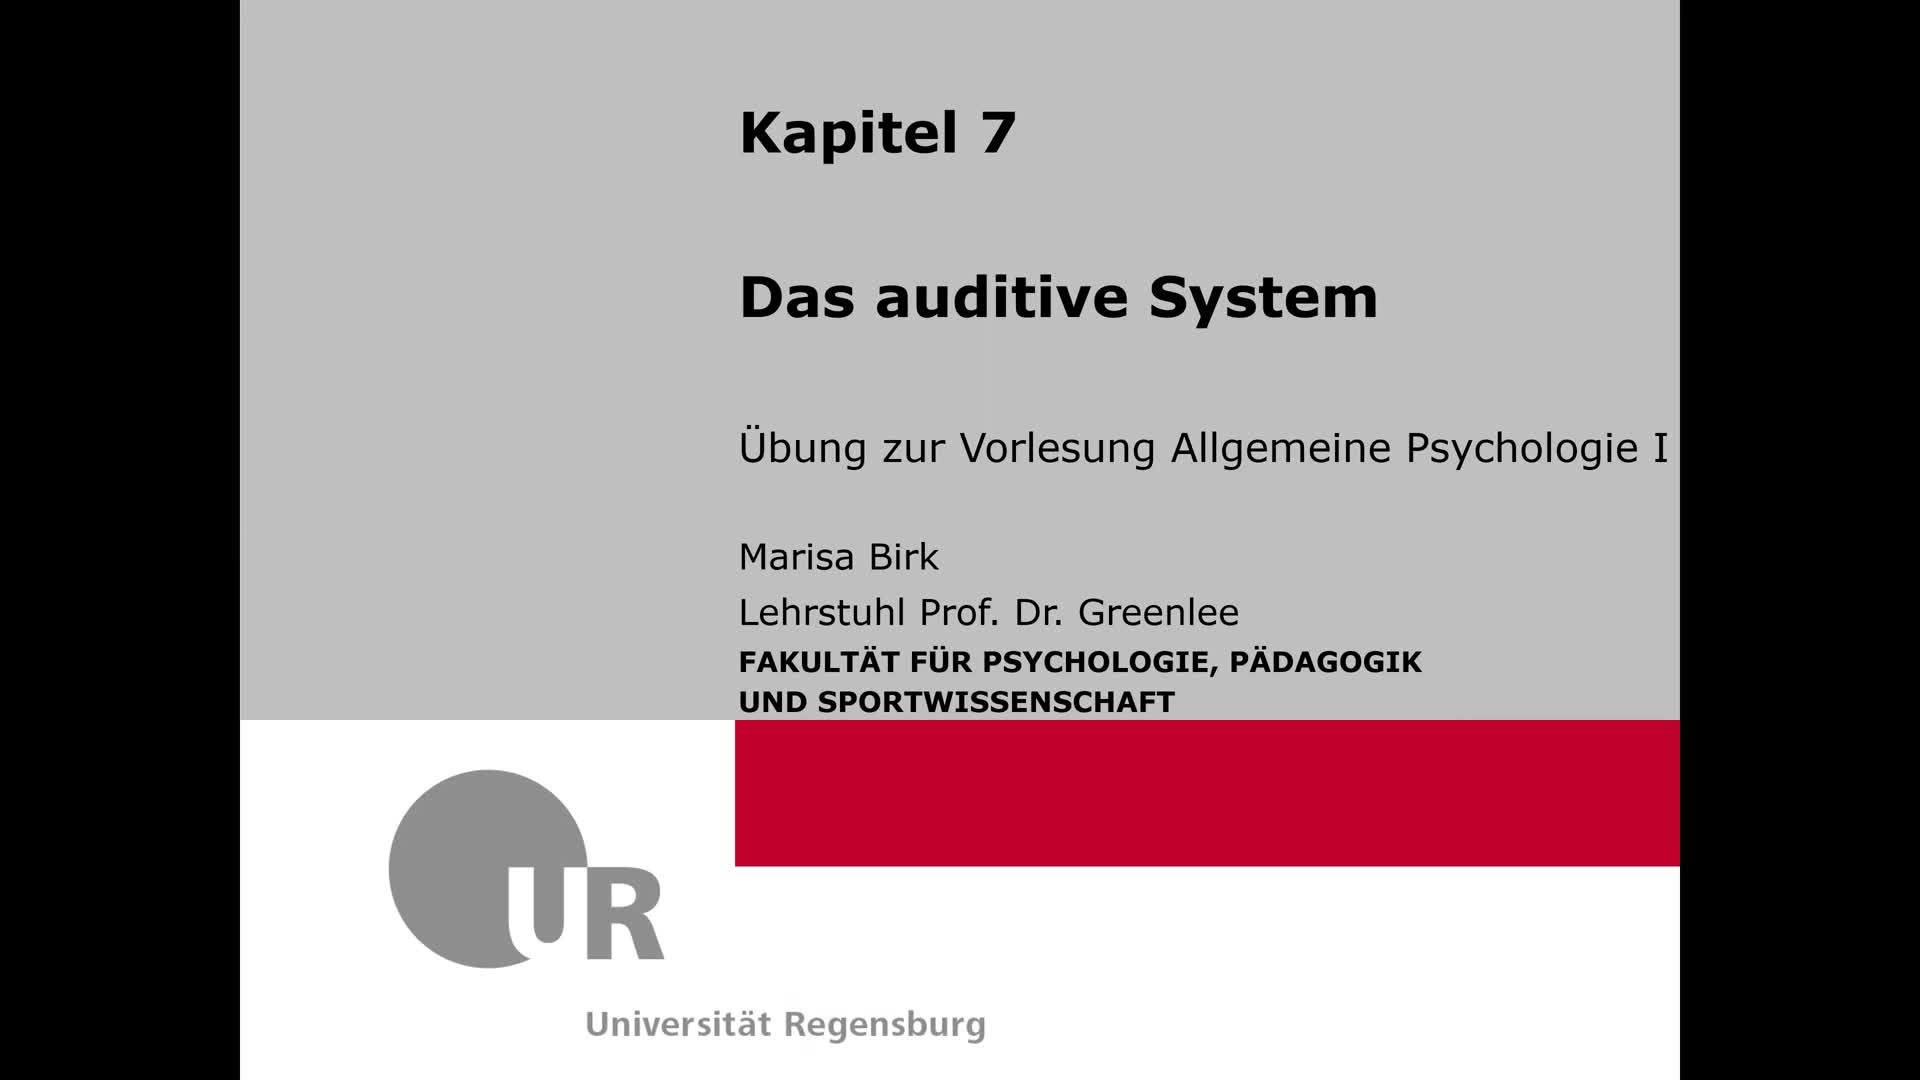 7. Das auditive System